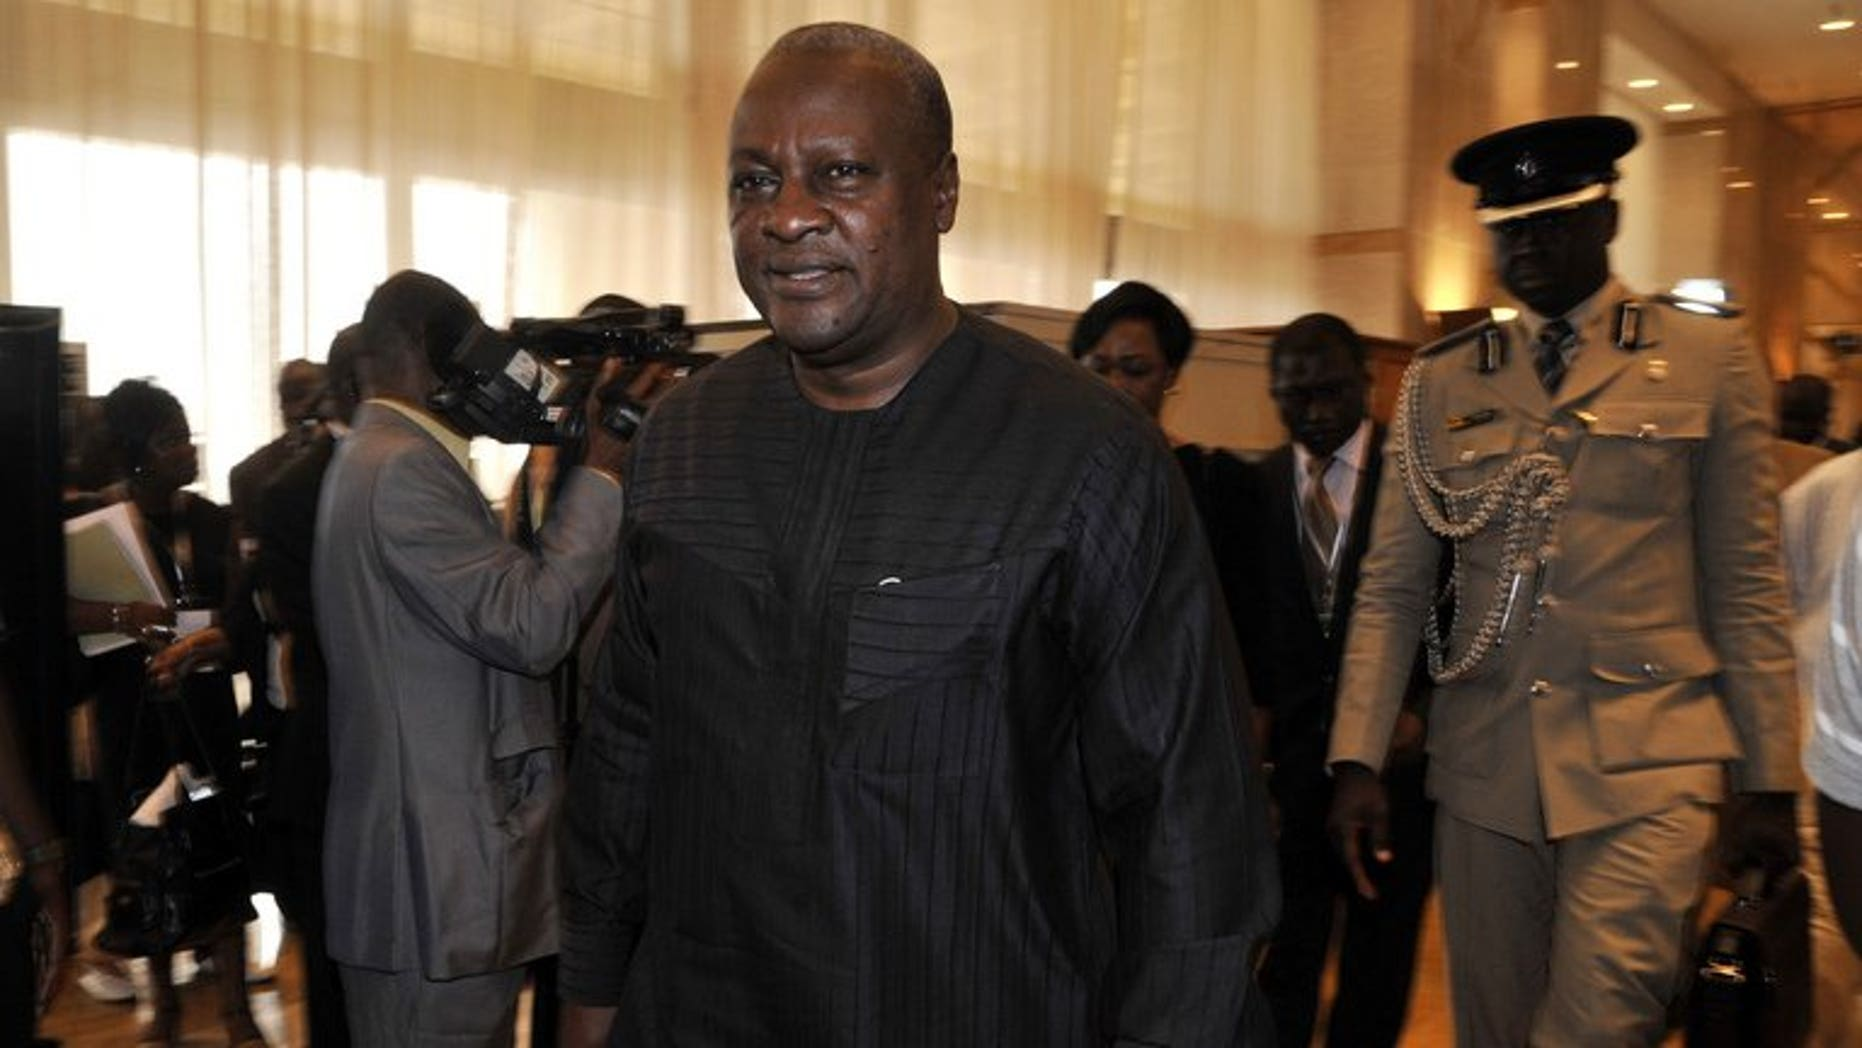 Ghana president John Dramani Mahamam in Yamoussoukro, Ivory Coast, Febuary 28, 2013. Ghanaian poet and statesman Kofi Awoonor was among the 59 people confirmed dead so far in an attack by Somali Islamist militants on a Nairobi shopping mall, Ghana's president confirmed on Sunday.